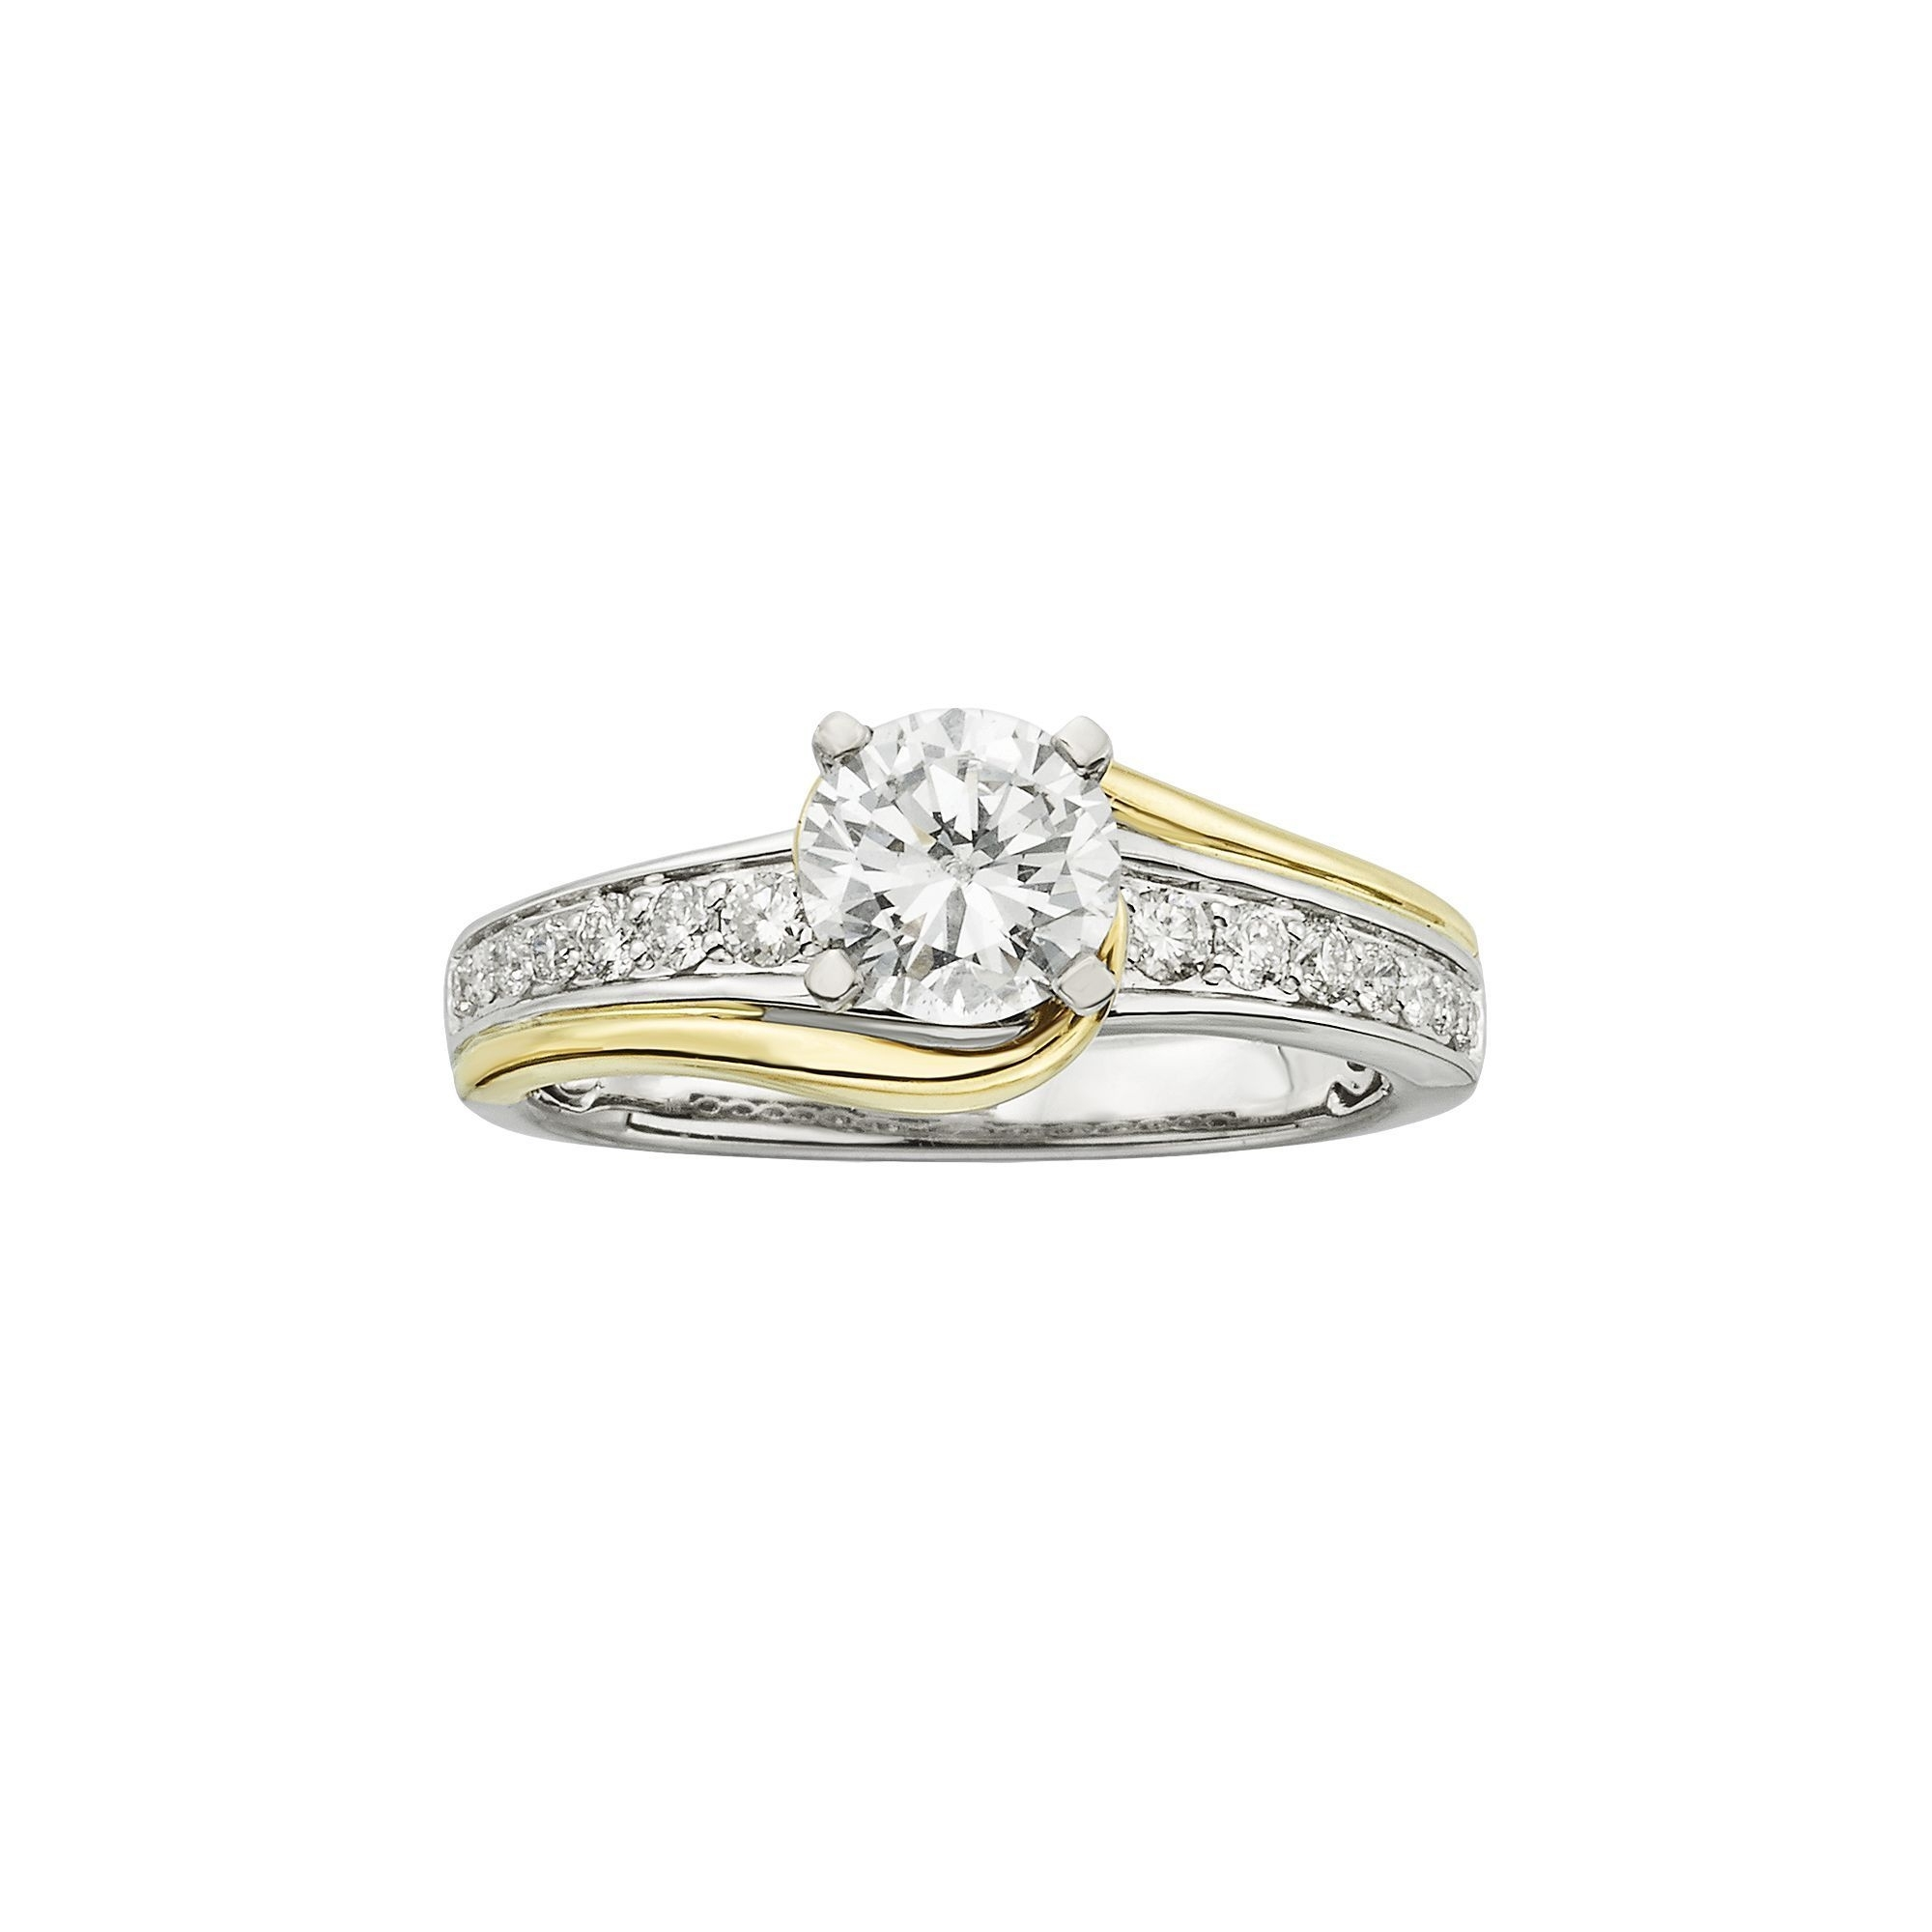 Mesmerizing Engagement Ring Swirl Band With Kohl S 14K Gold Two Tone Regarding Most Recent Two Stone Diamond Swirl Bands In 14K Two Tone Gold (Gallery 7 of 15)